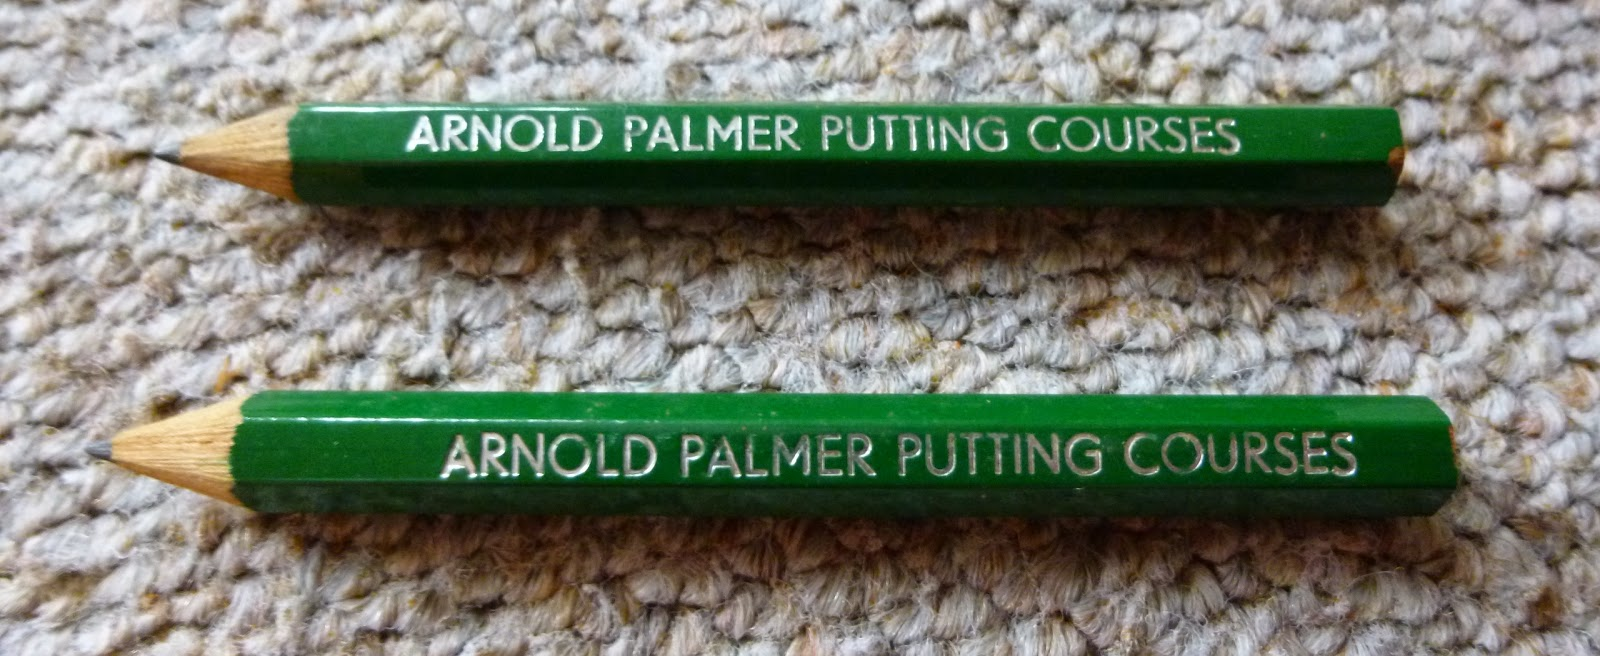 Arnold Palmer Putting Courses Pencils from the Crazy Golf course in Prestatyn, Wales